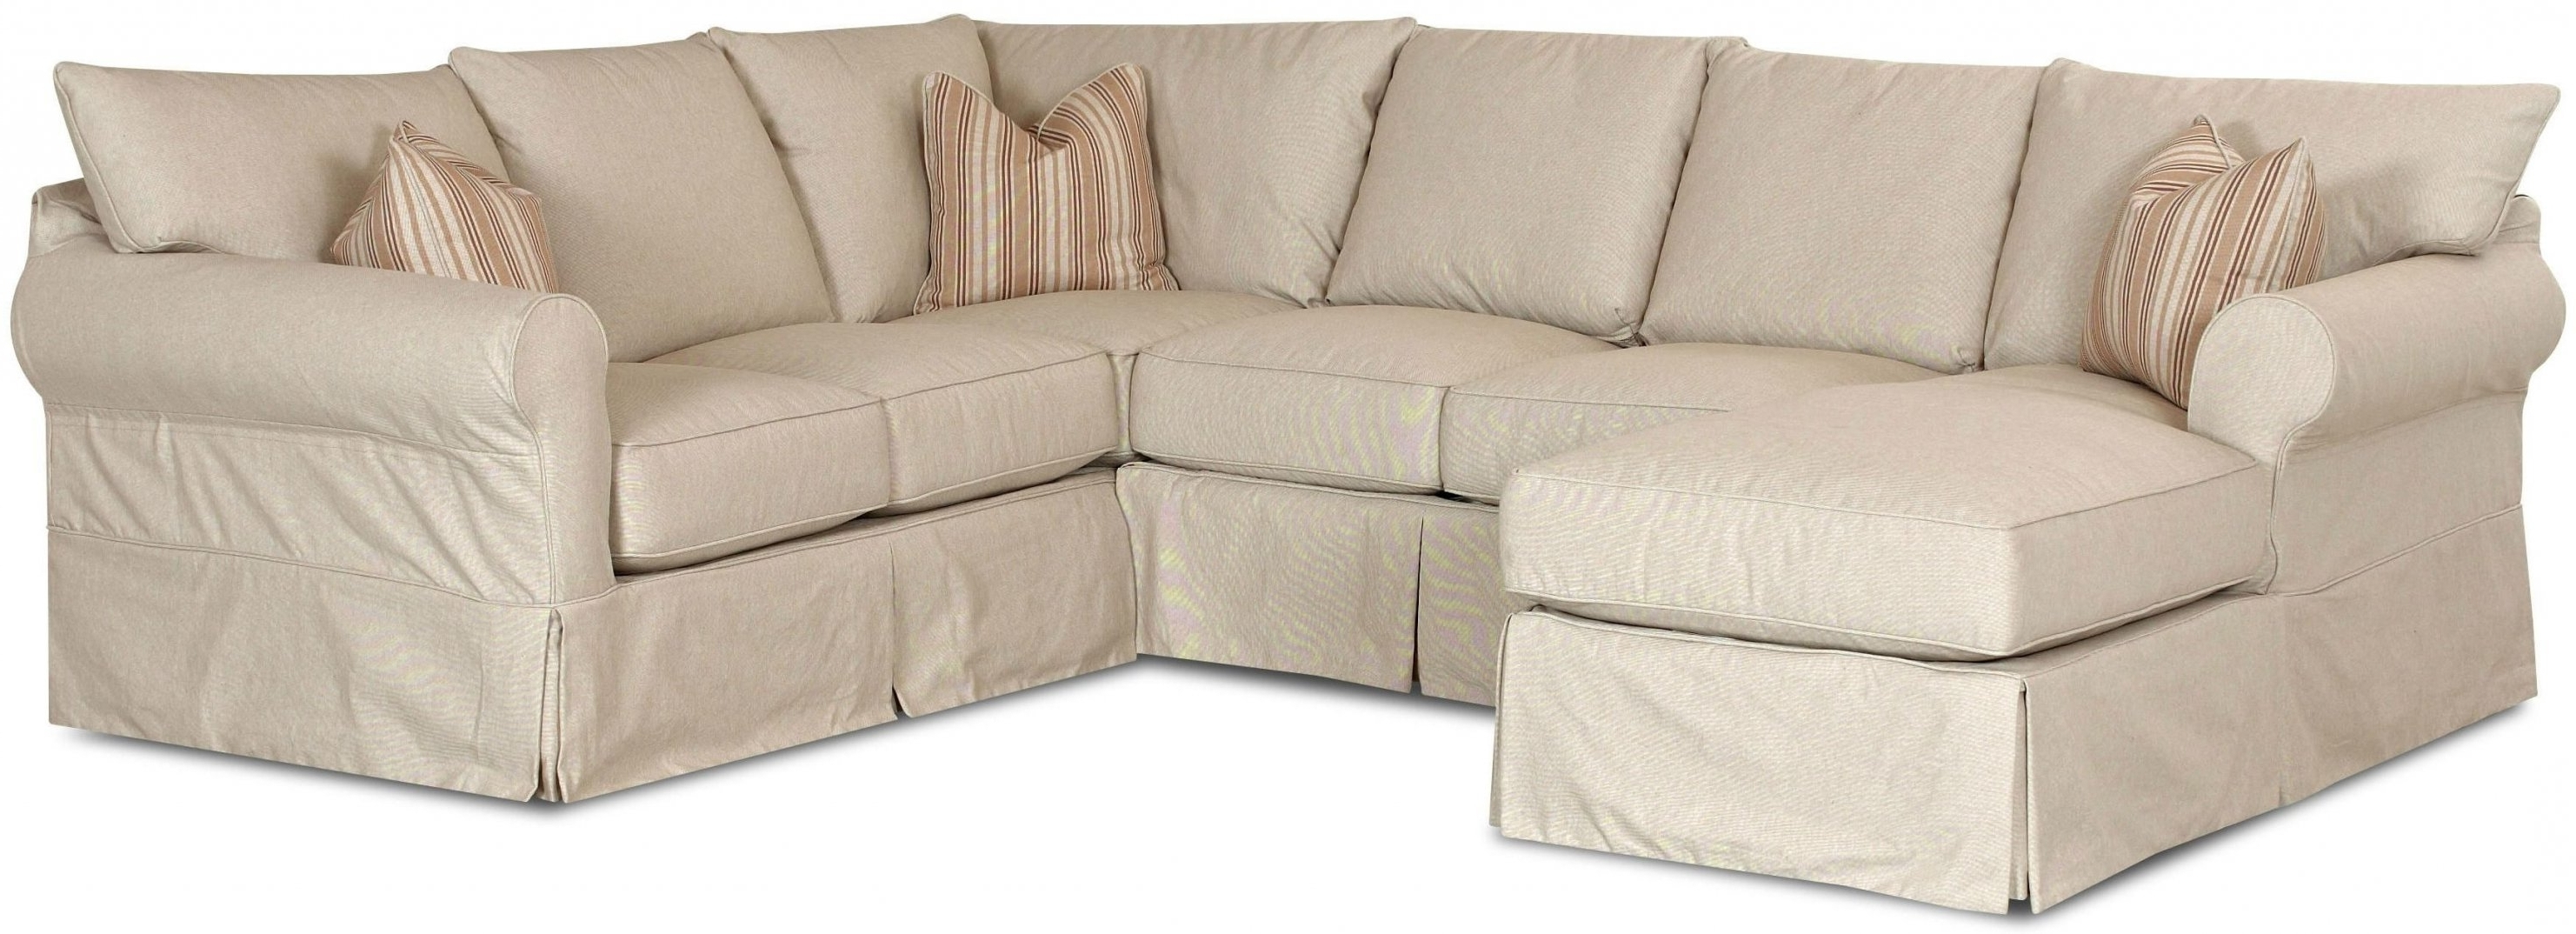 Current Chaise Couch Covers Intended For Sectional Sofa Covers Http Ml2R Com Pinterest Chaise Lounge (View 7 of 15)